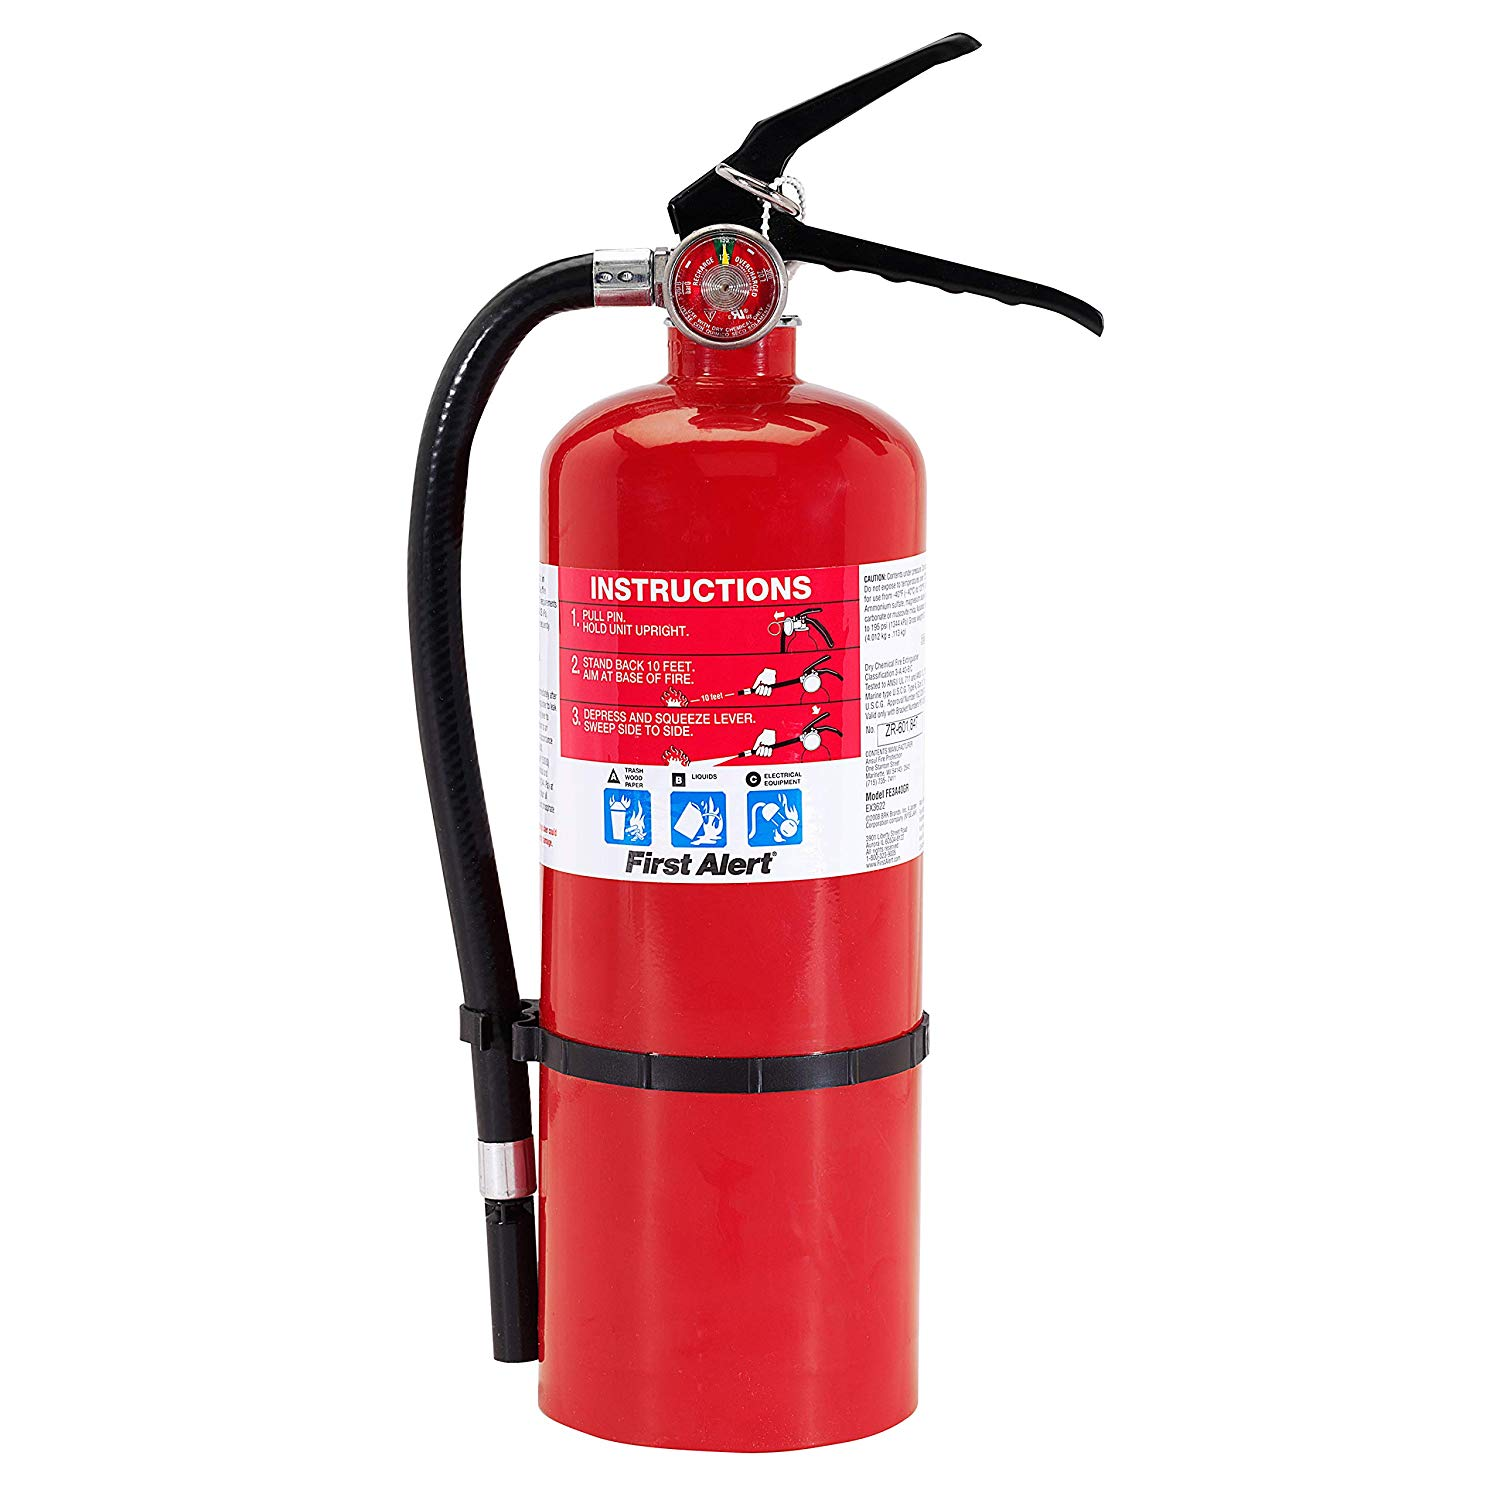 Best Fire Extinguisher For Office